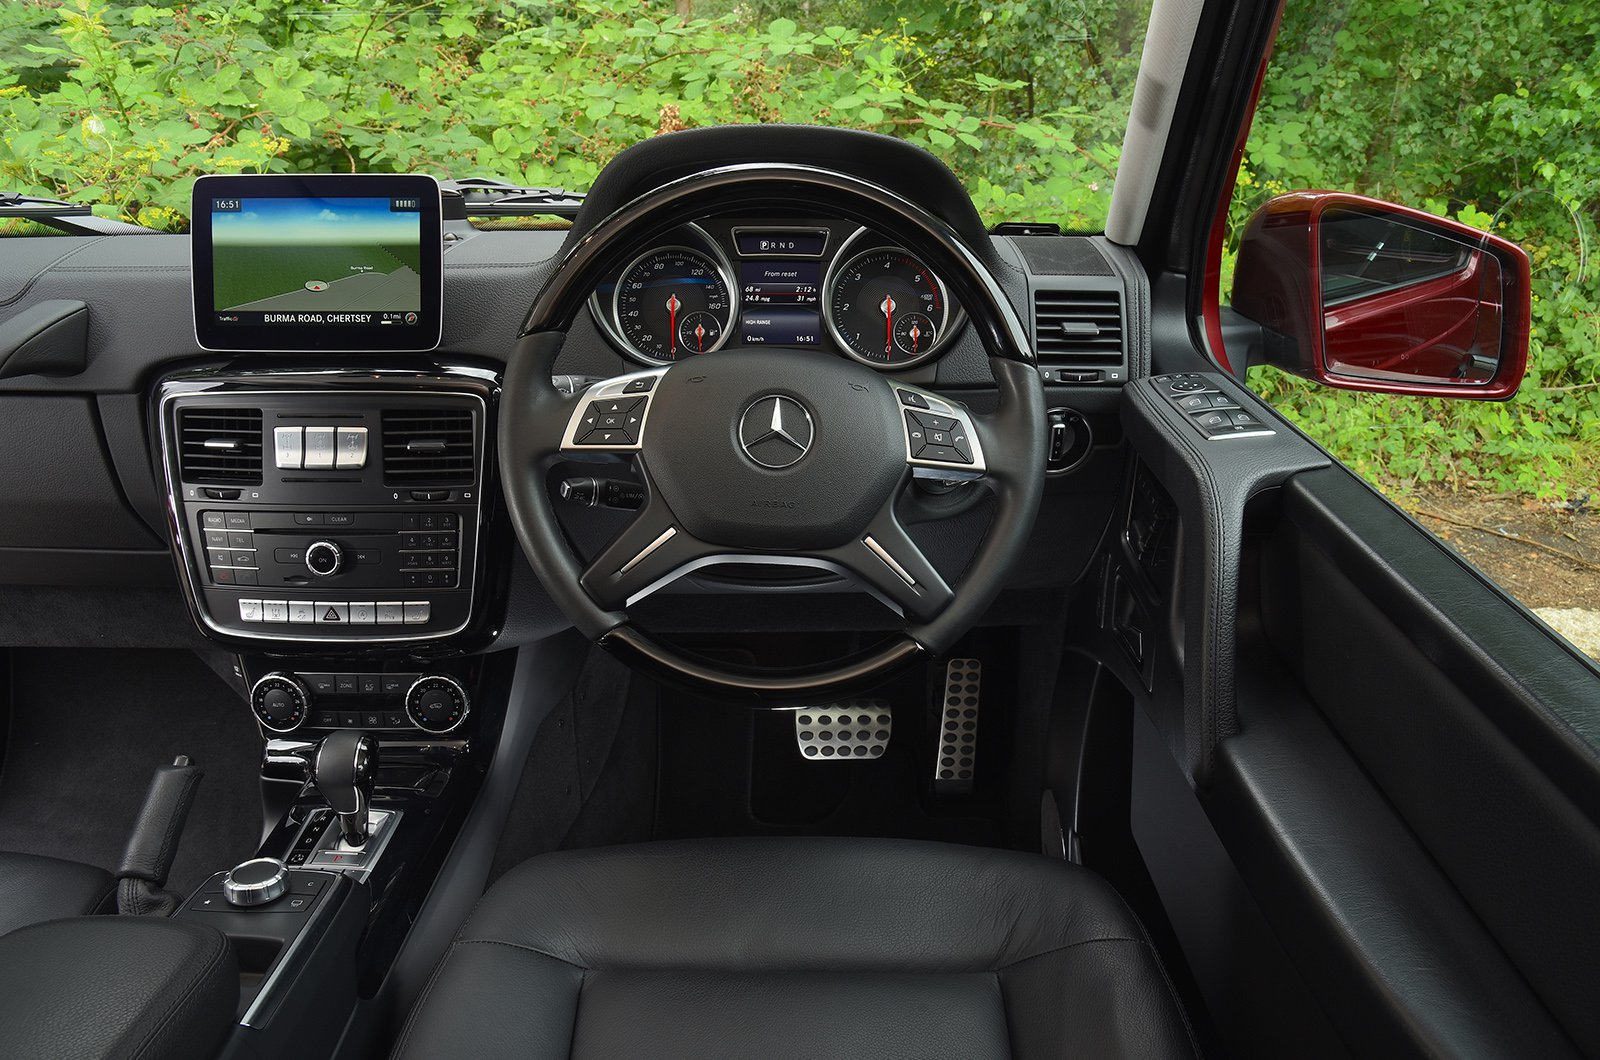 Used Mercedes G-Class 2010-2018 interior